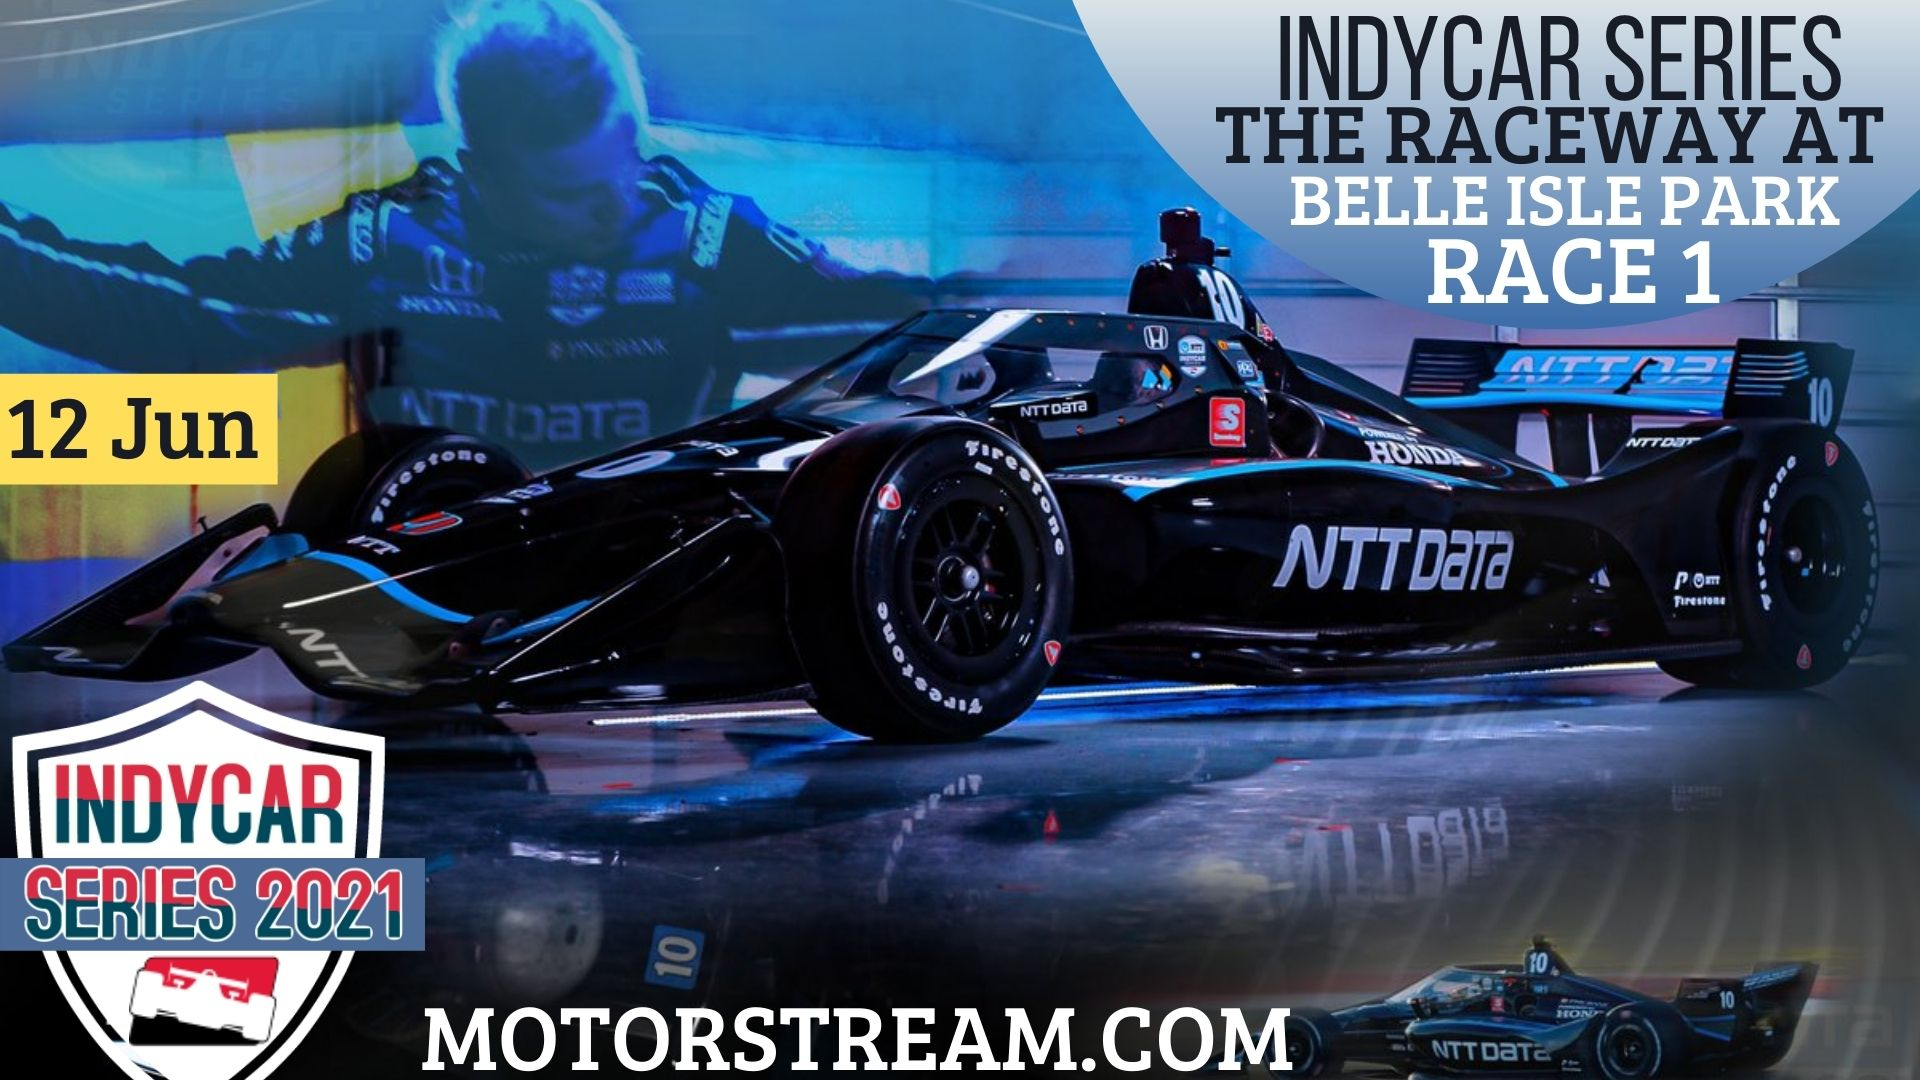 The Raceway At Belle Isle Park Race 1 Grand Prix Live Stream 2021